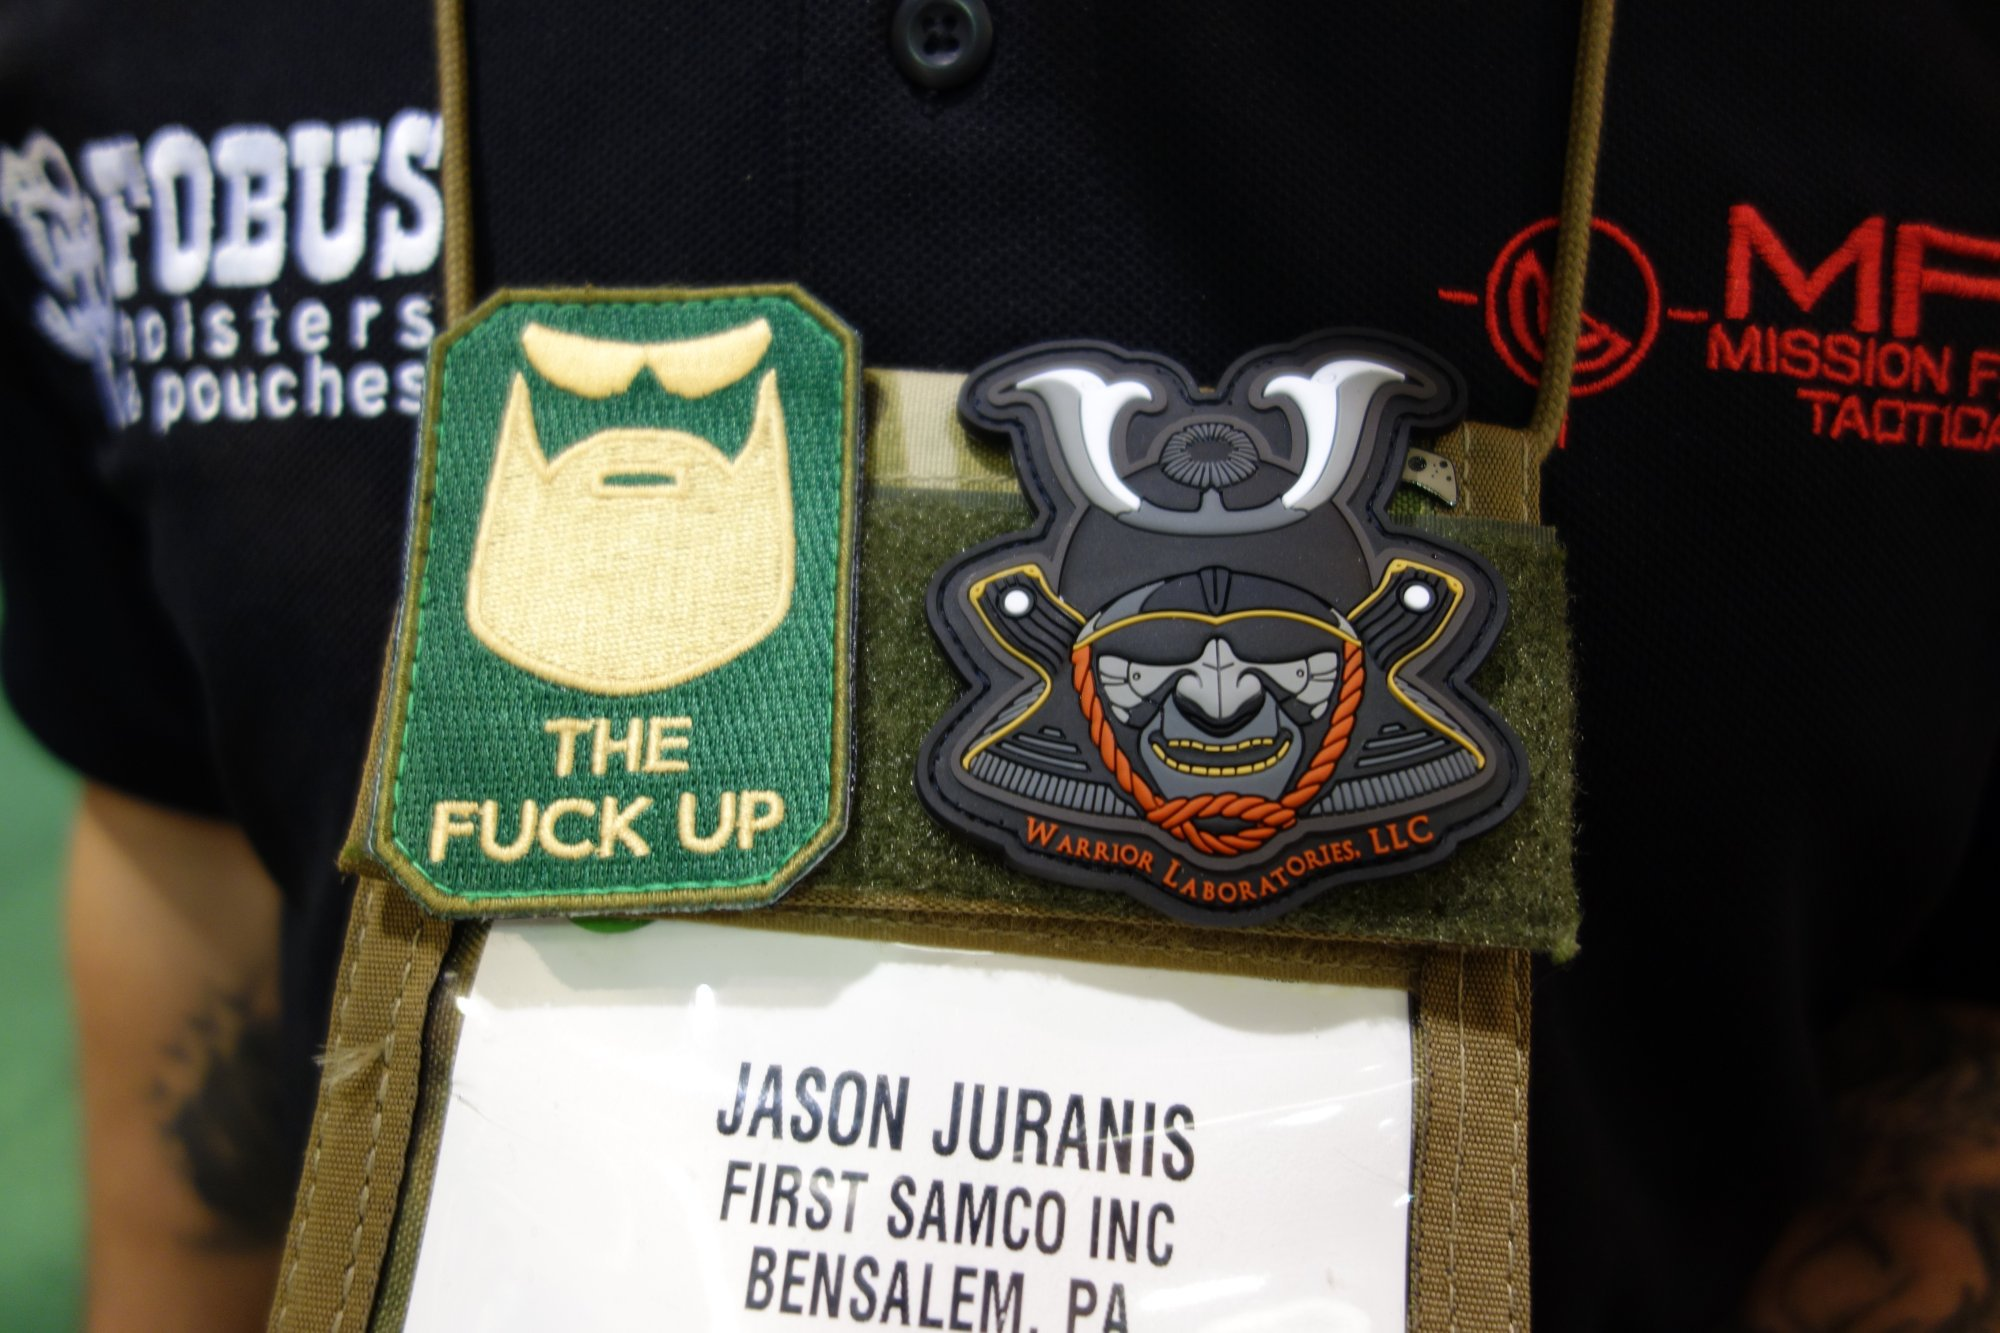 Warrior Laboratories LLC Patch Jason Juranis Mission First Tactical MFT 1 Cool Patch Alert: Warrior Laboratories Samurai Warrior Tactical Patch (PVC Morale Patch)